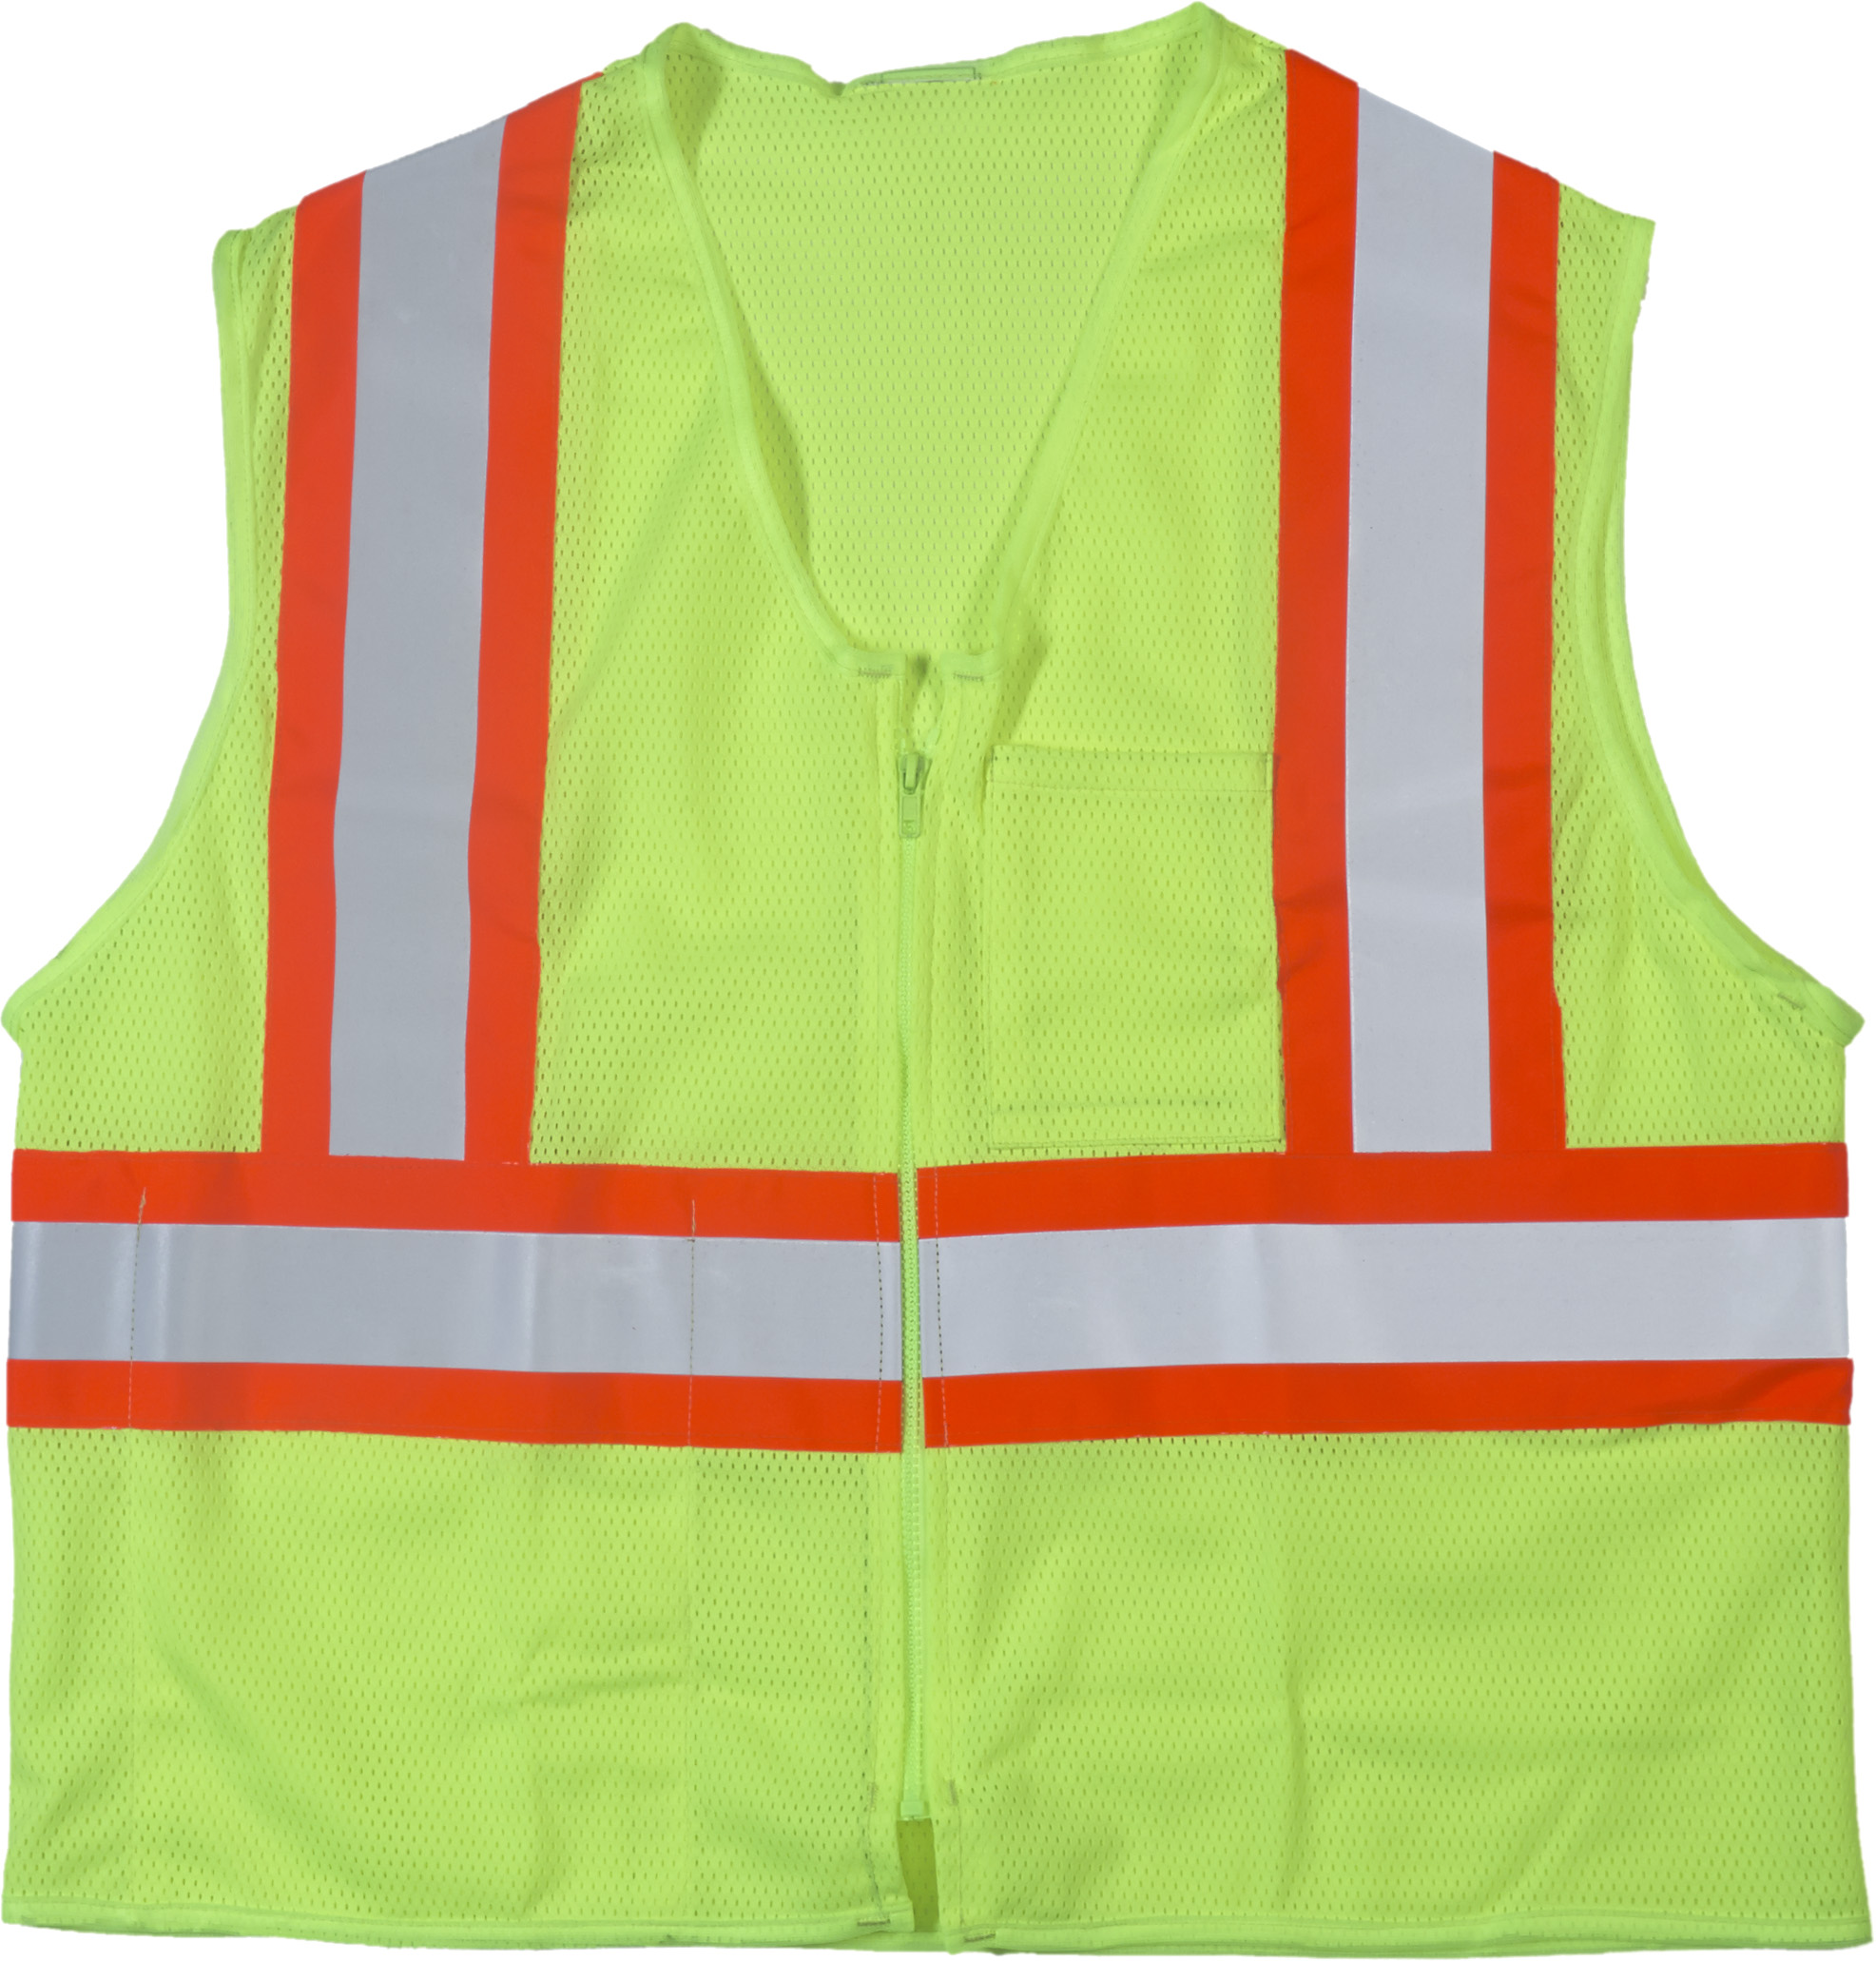 "High Visibility ANSI Class 2 Safety Vest with 1 Outside and 1 Inside Pocket and 4"" Orange/Silver/Orange Reflective Tape, Small/Medium, Lime"